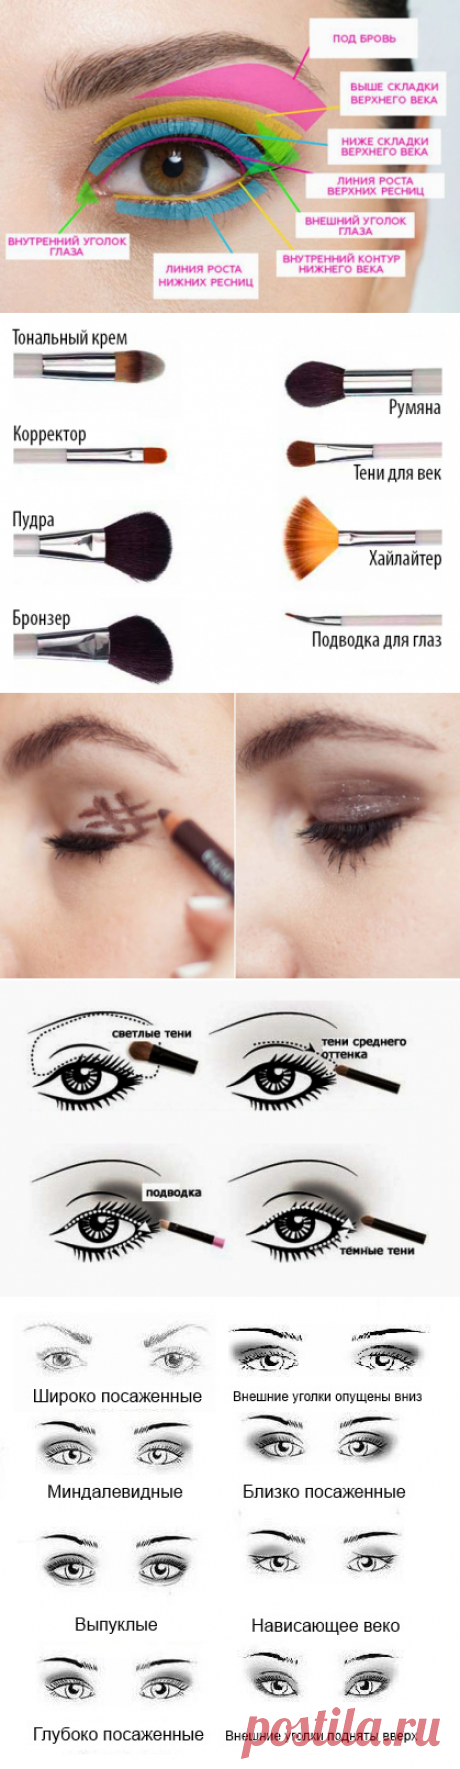 17 cunnings of a make-up of eyes which each girl has to know